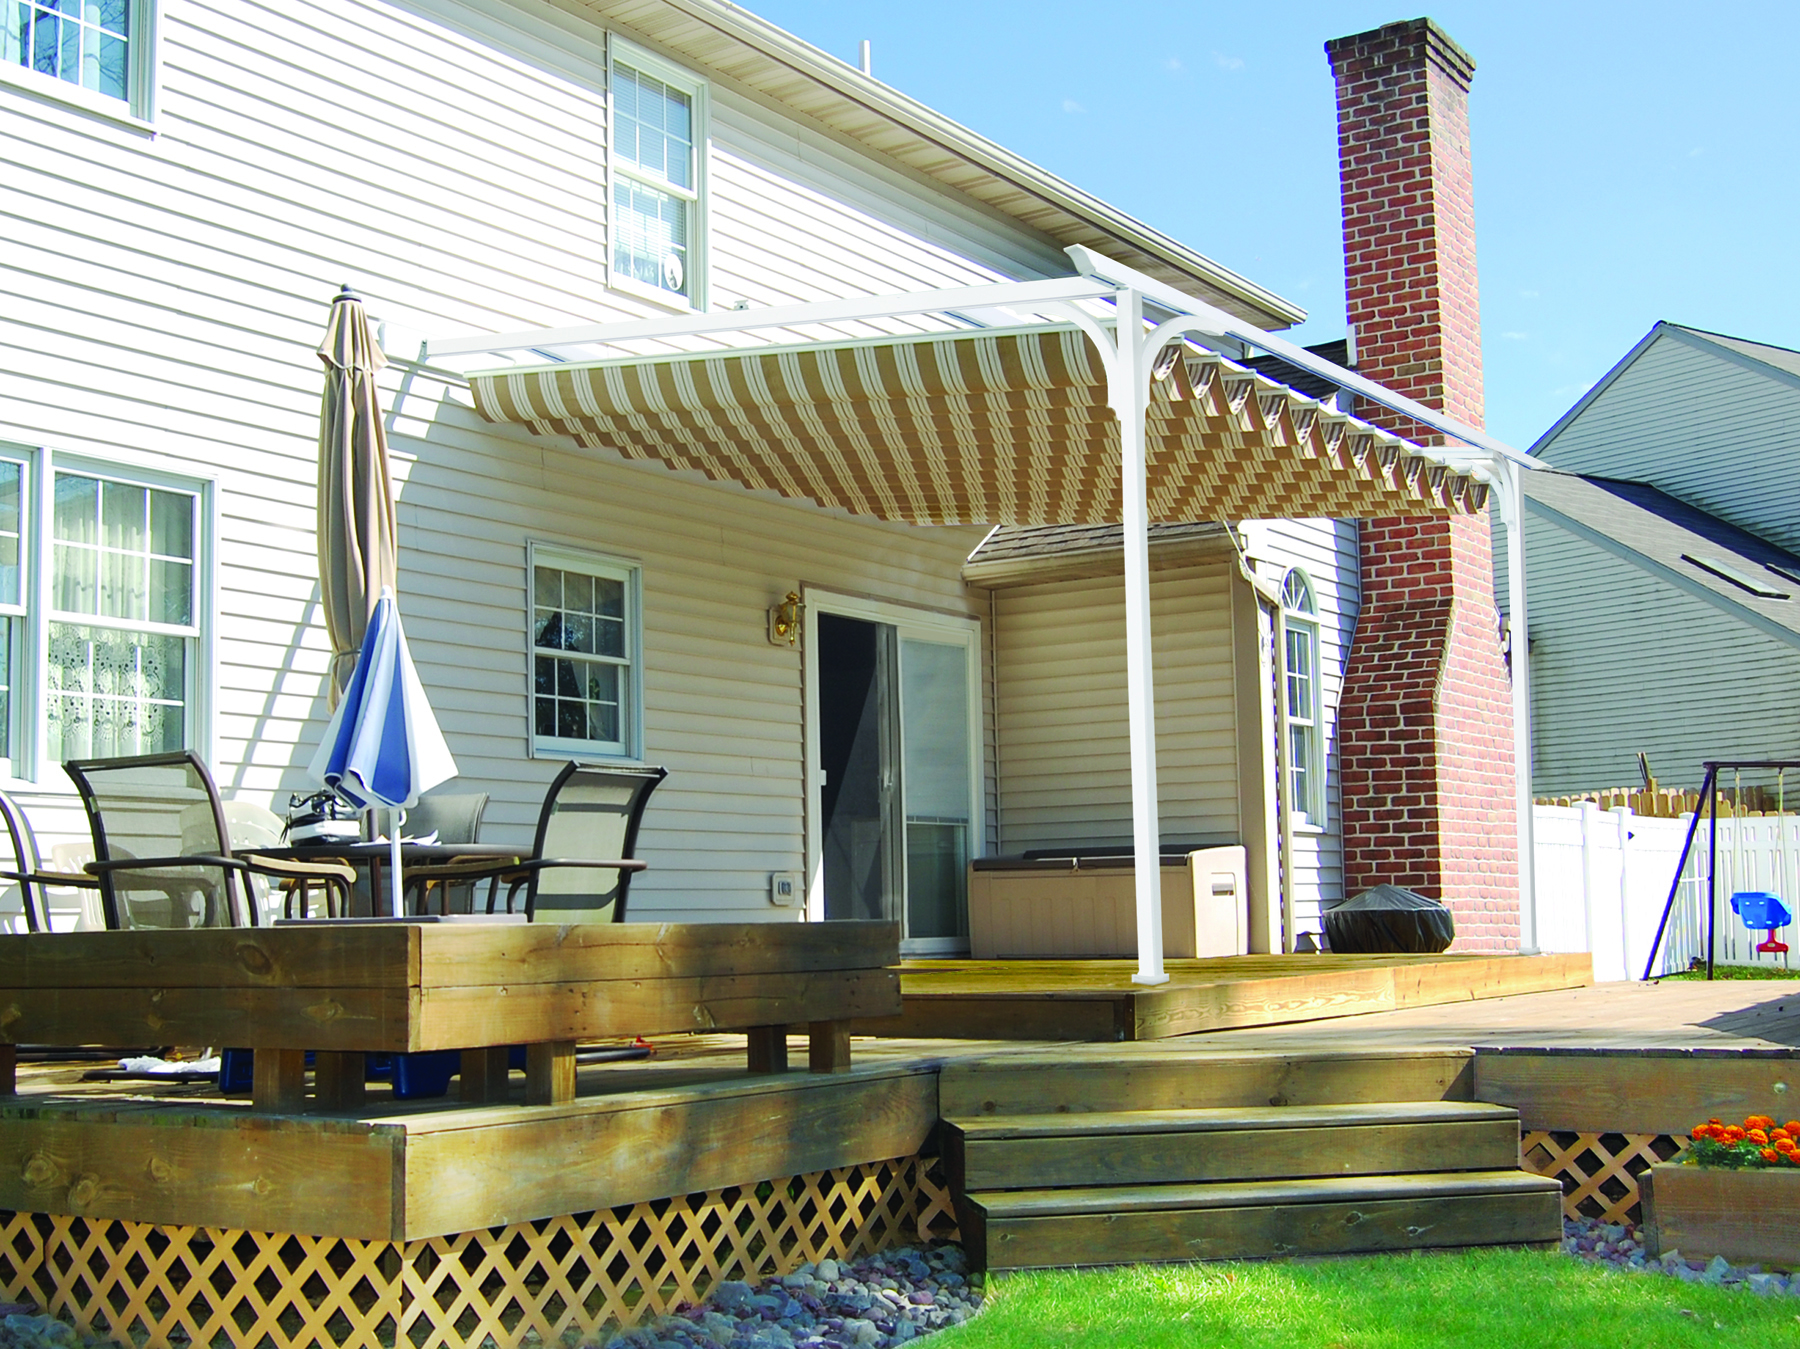 Betterliving Sunrooms And Shade Products Photo Gallery